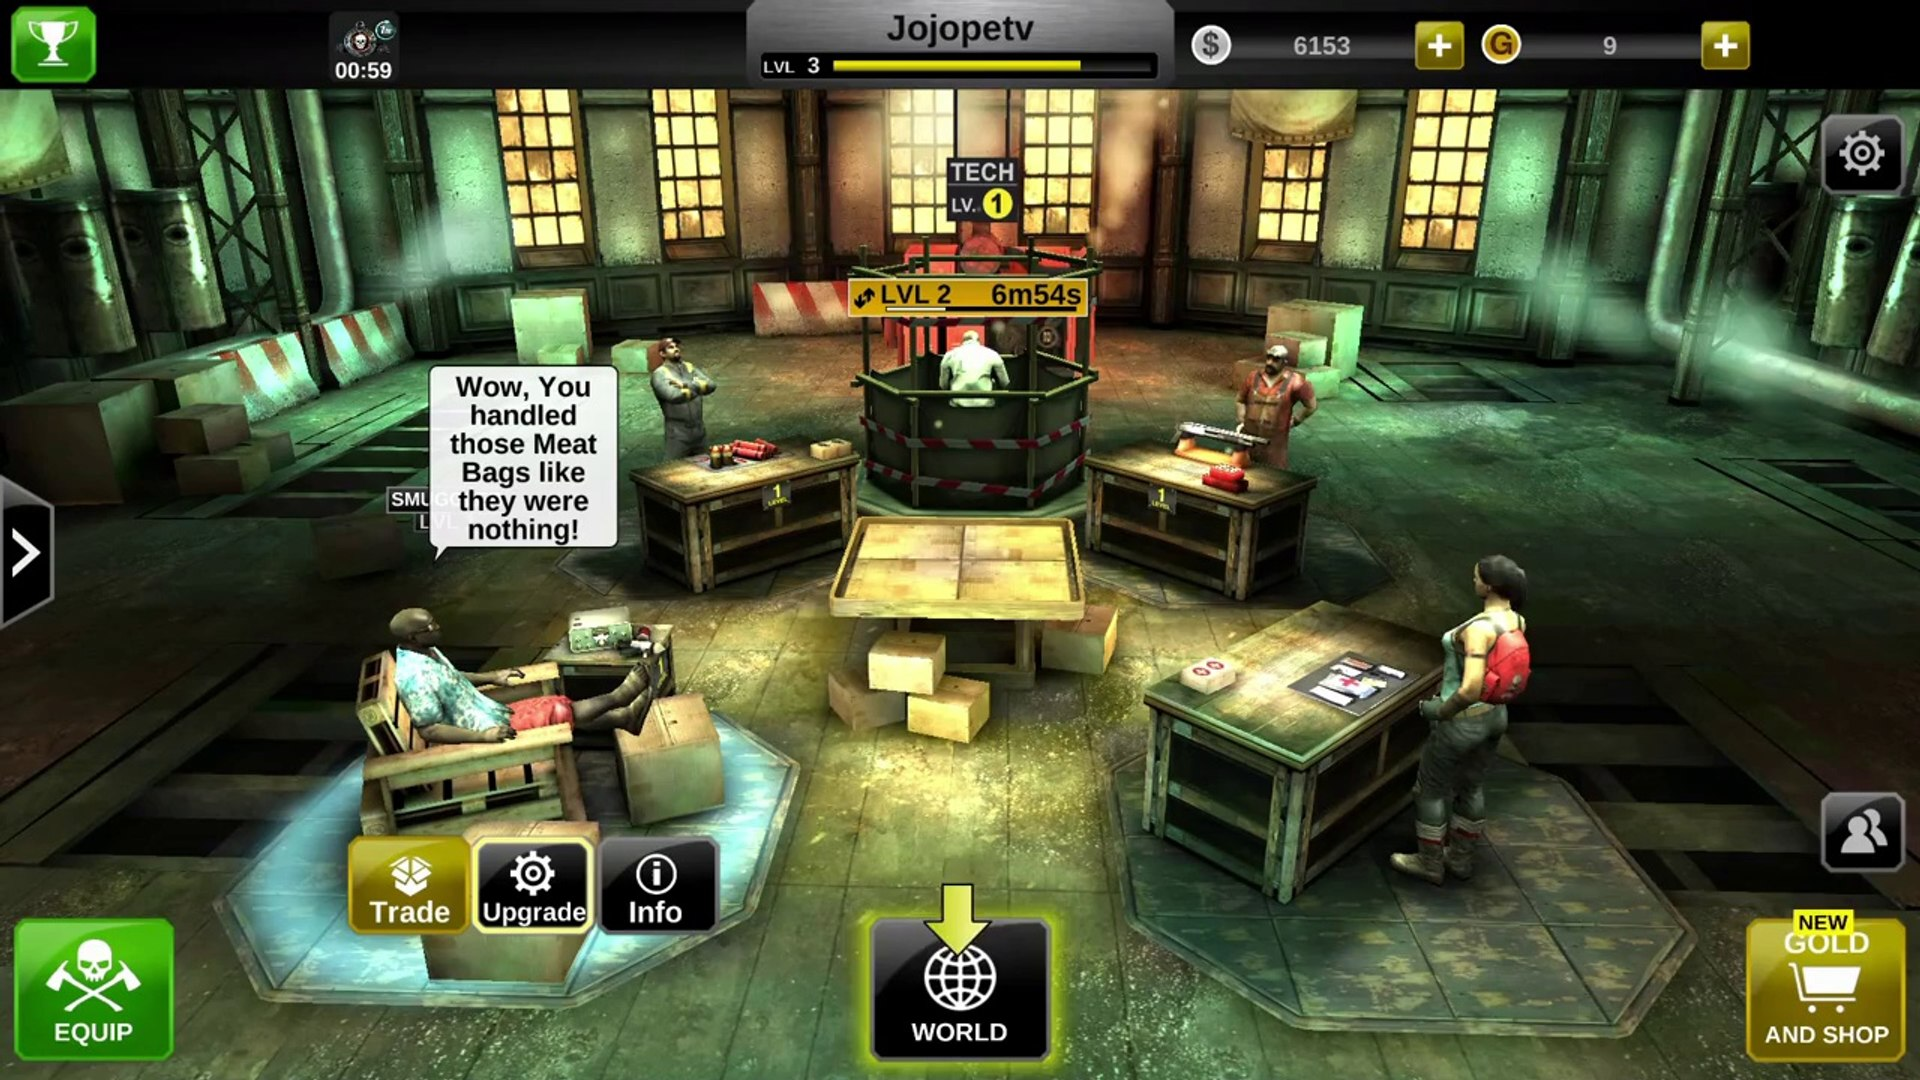 Dead Trigger 2 Amazon Fire Tv Gameplay 1080p Video Dailymotion